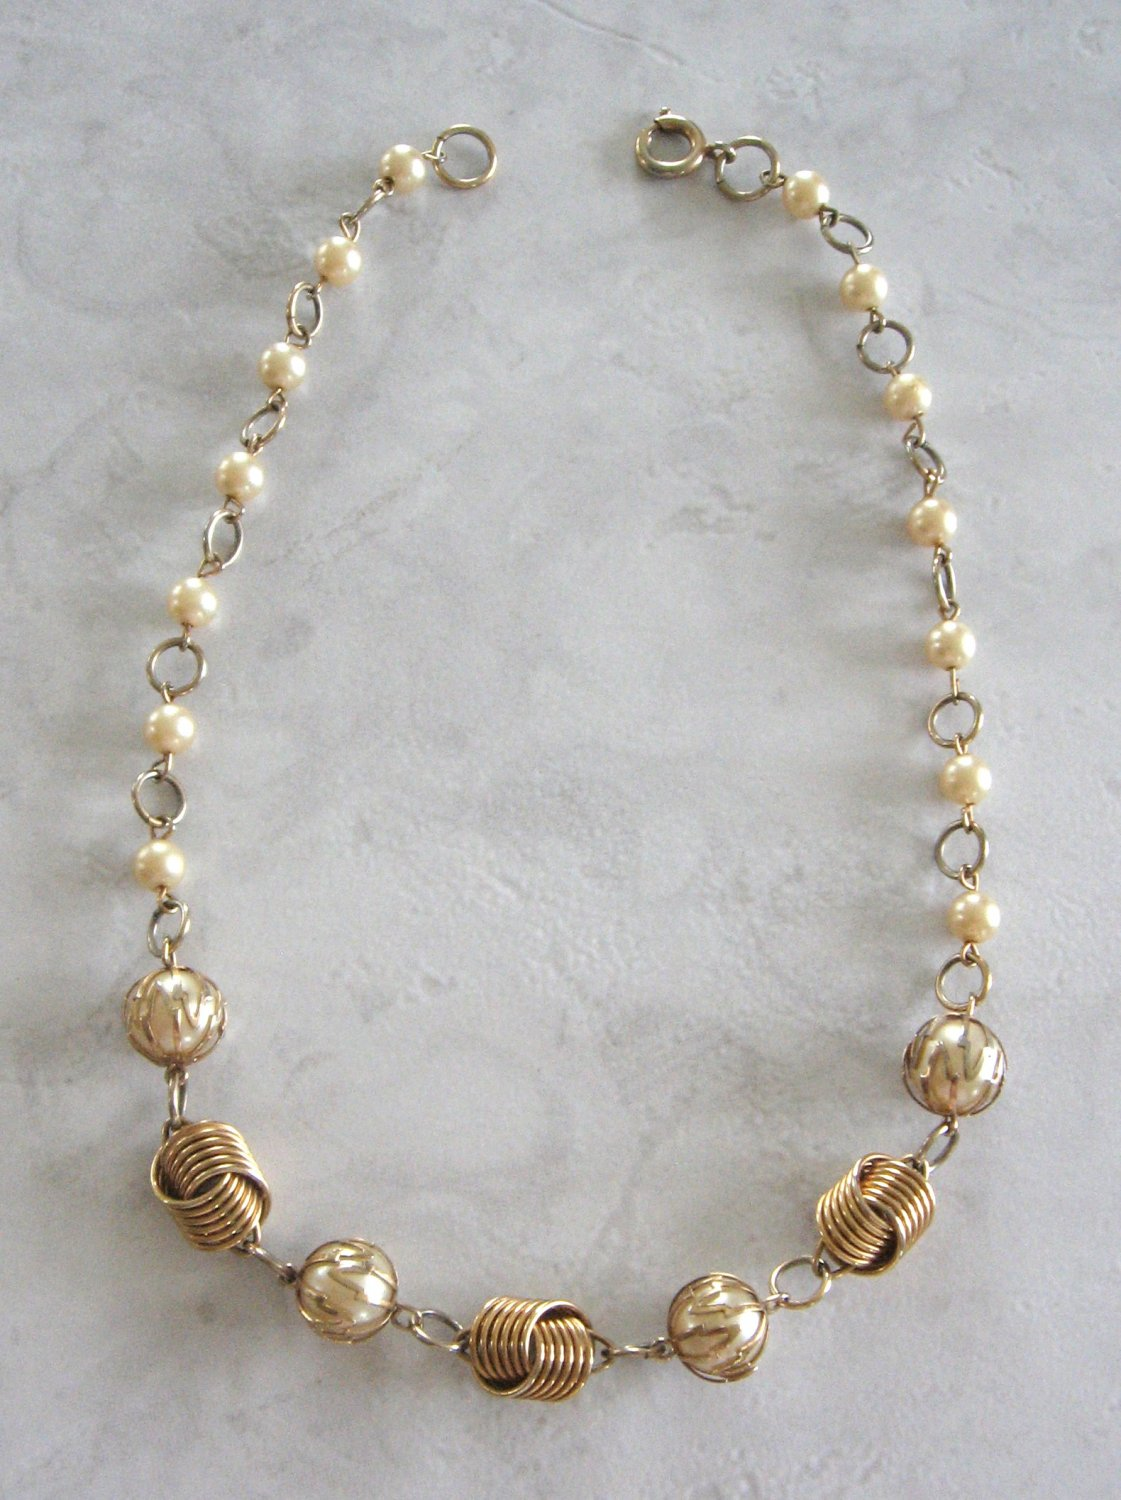 4d6ed86231af4 Gold Wrapped Pearl Beaded Necklace Retro Germany Vintage Jewelry 1950s